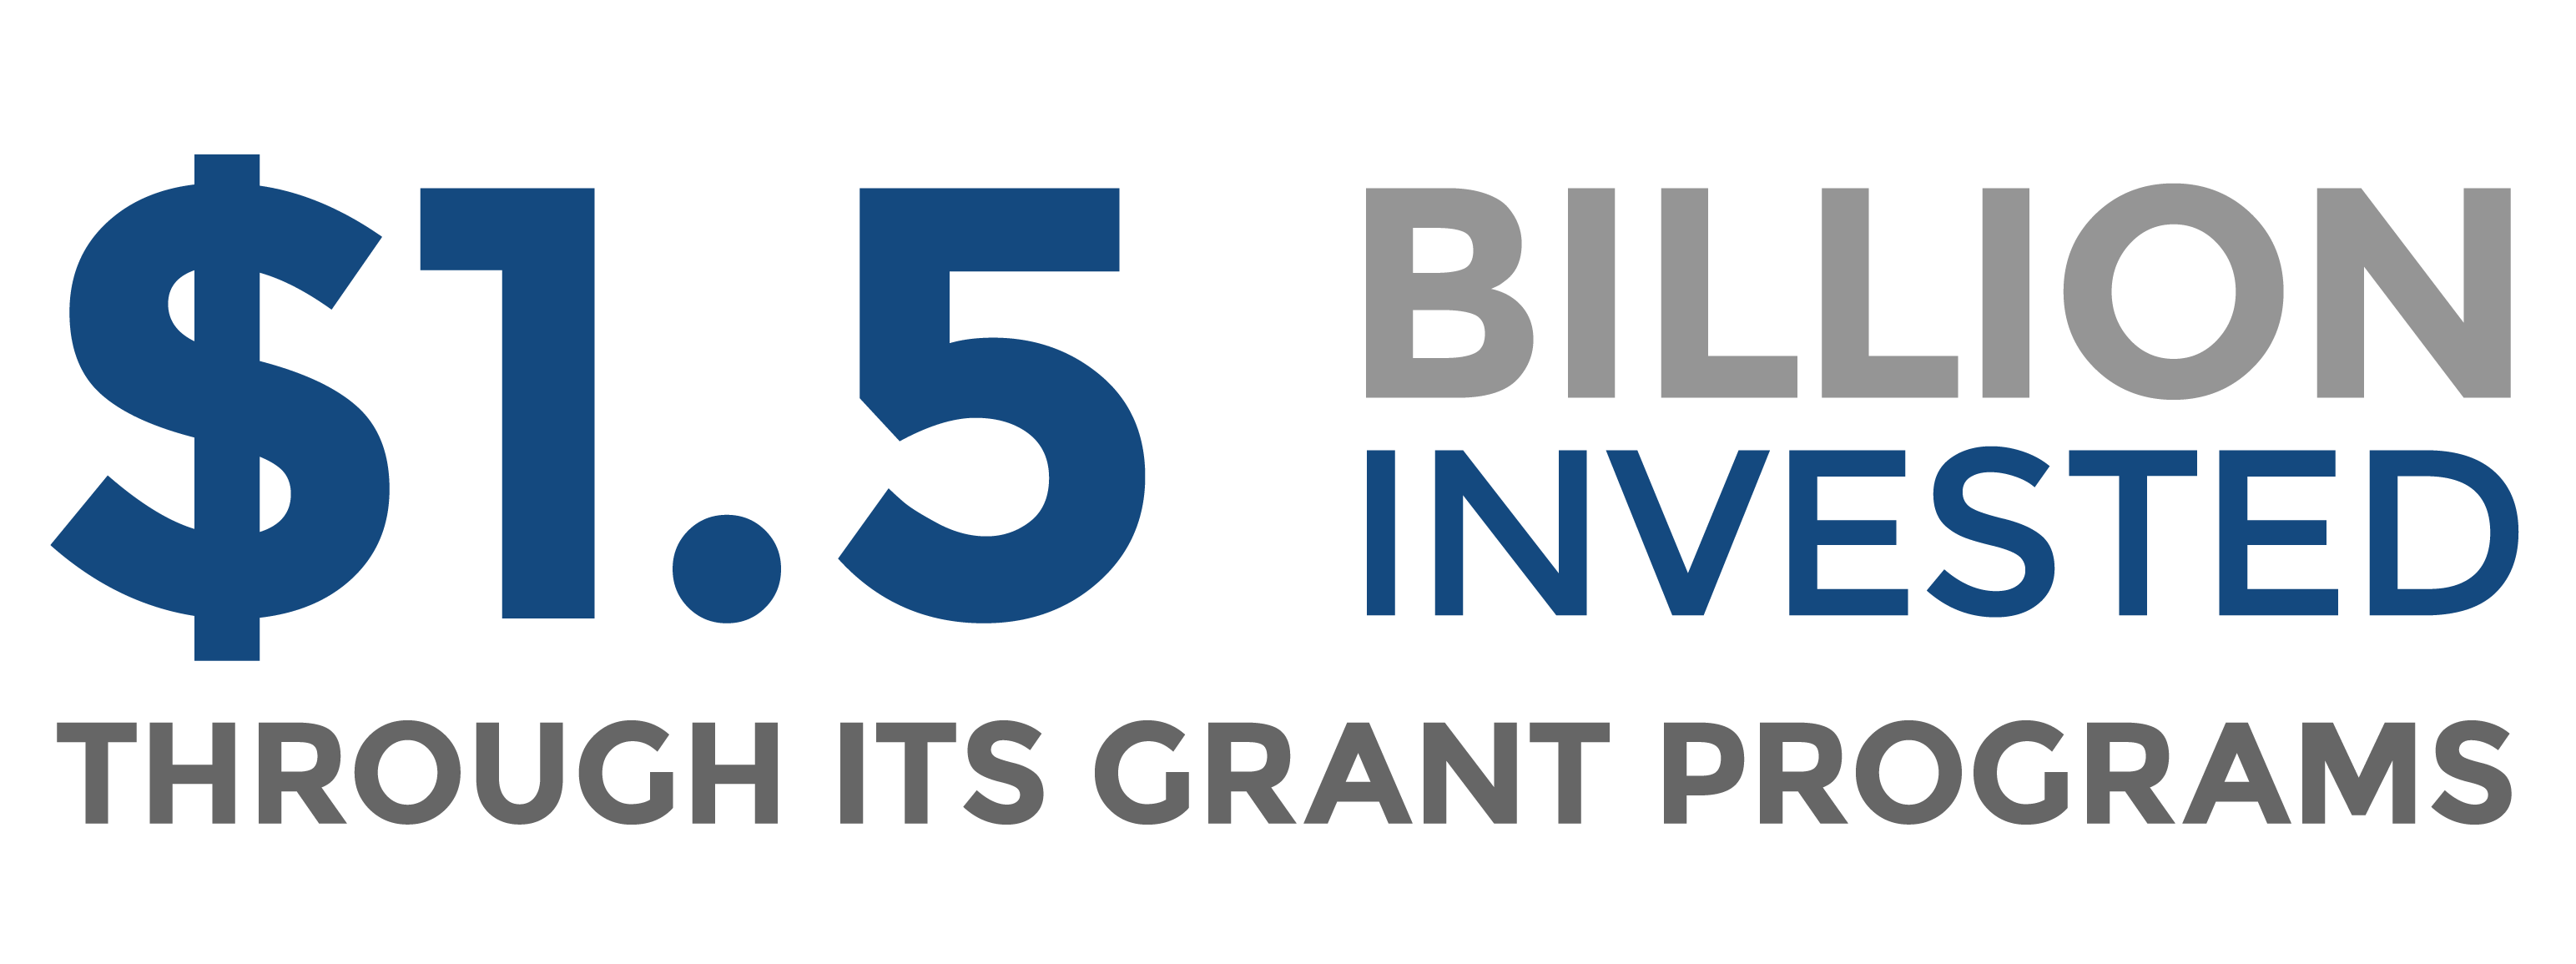 $1.5 billion invested through its grant programs.